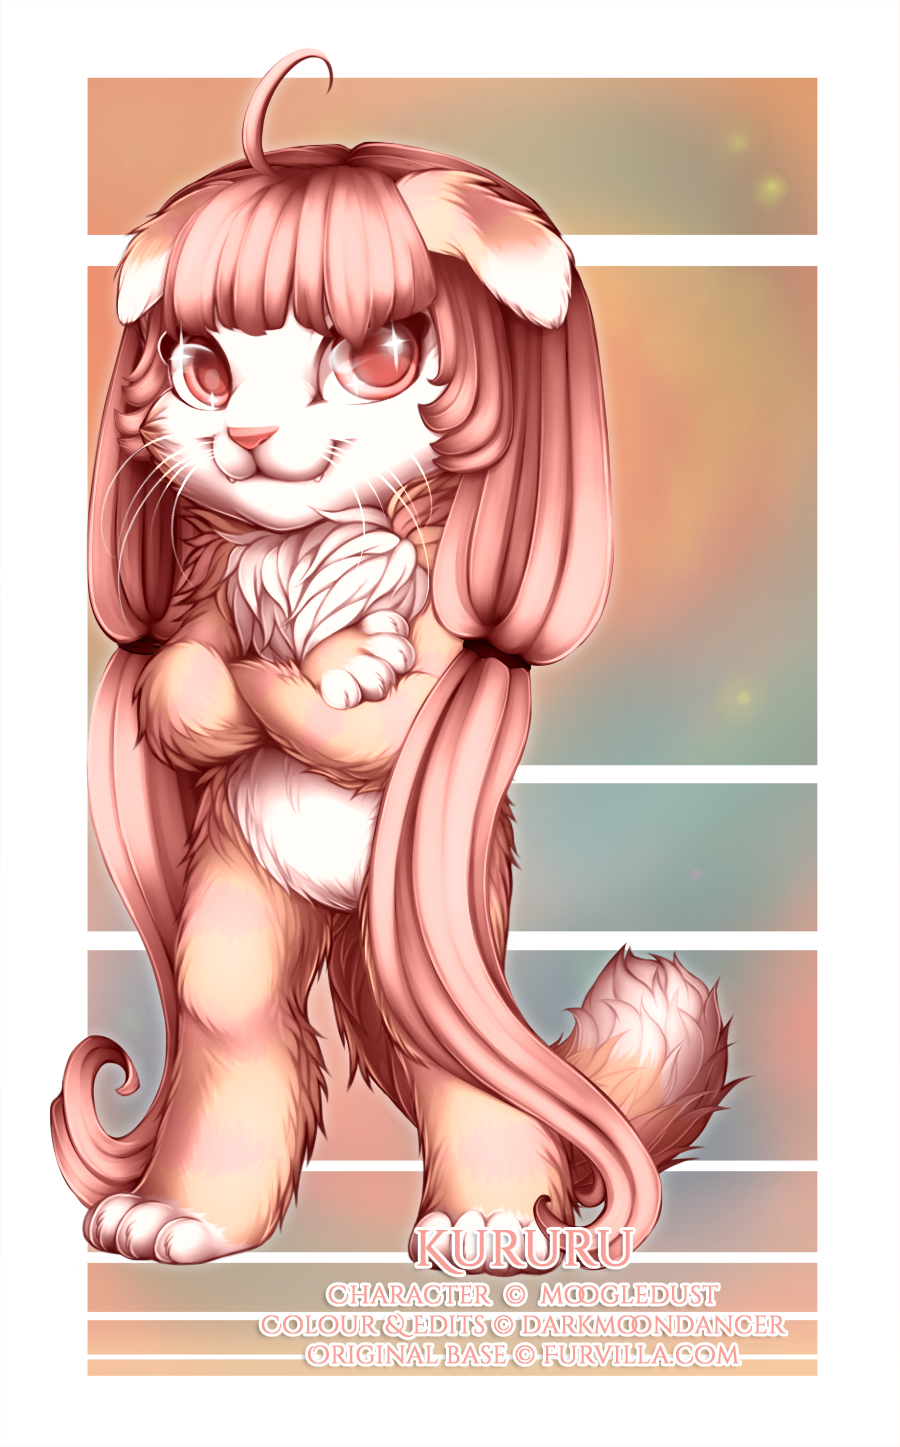 This is Kururu (c) MoogleDust, and I got to colour her as well as edit in this amazing anime hair and eye sparkles for extra kawaii-dosage ;)